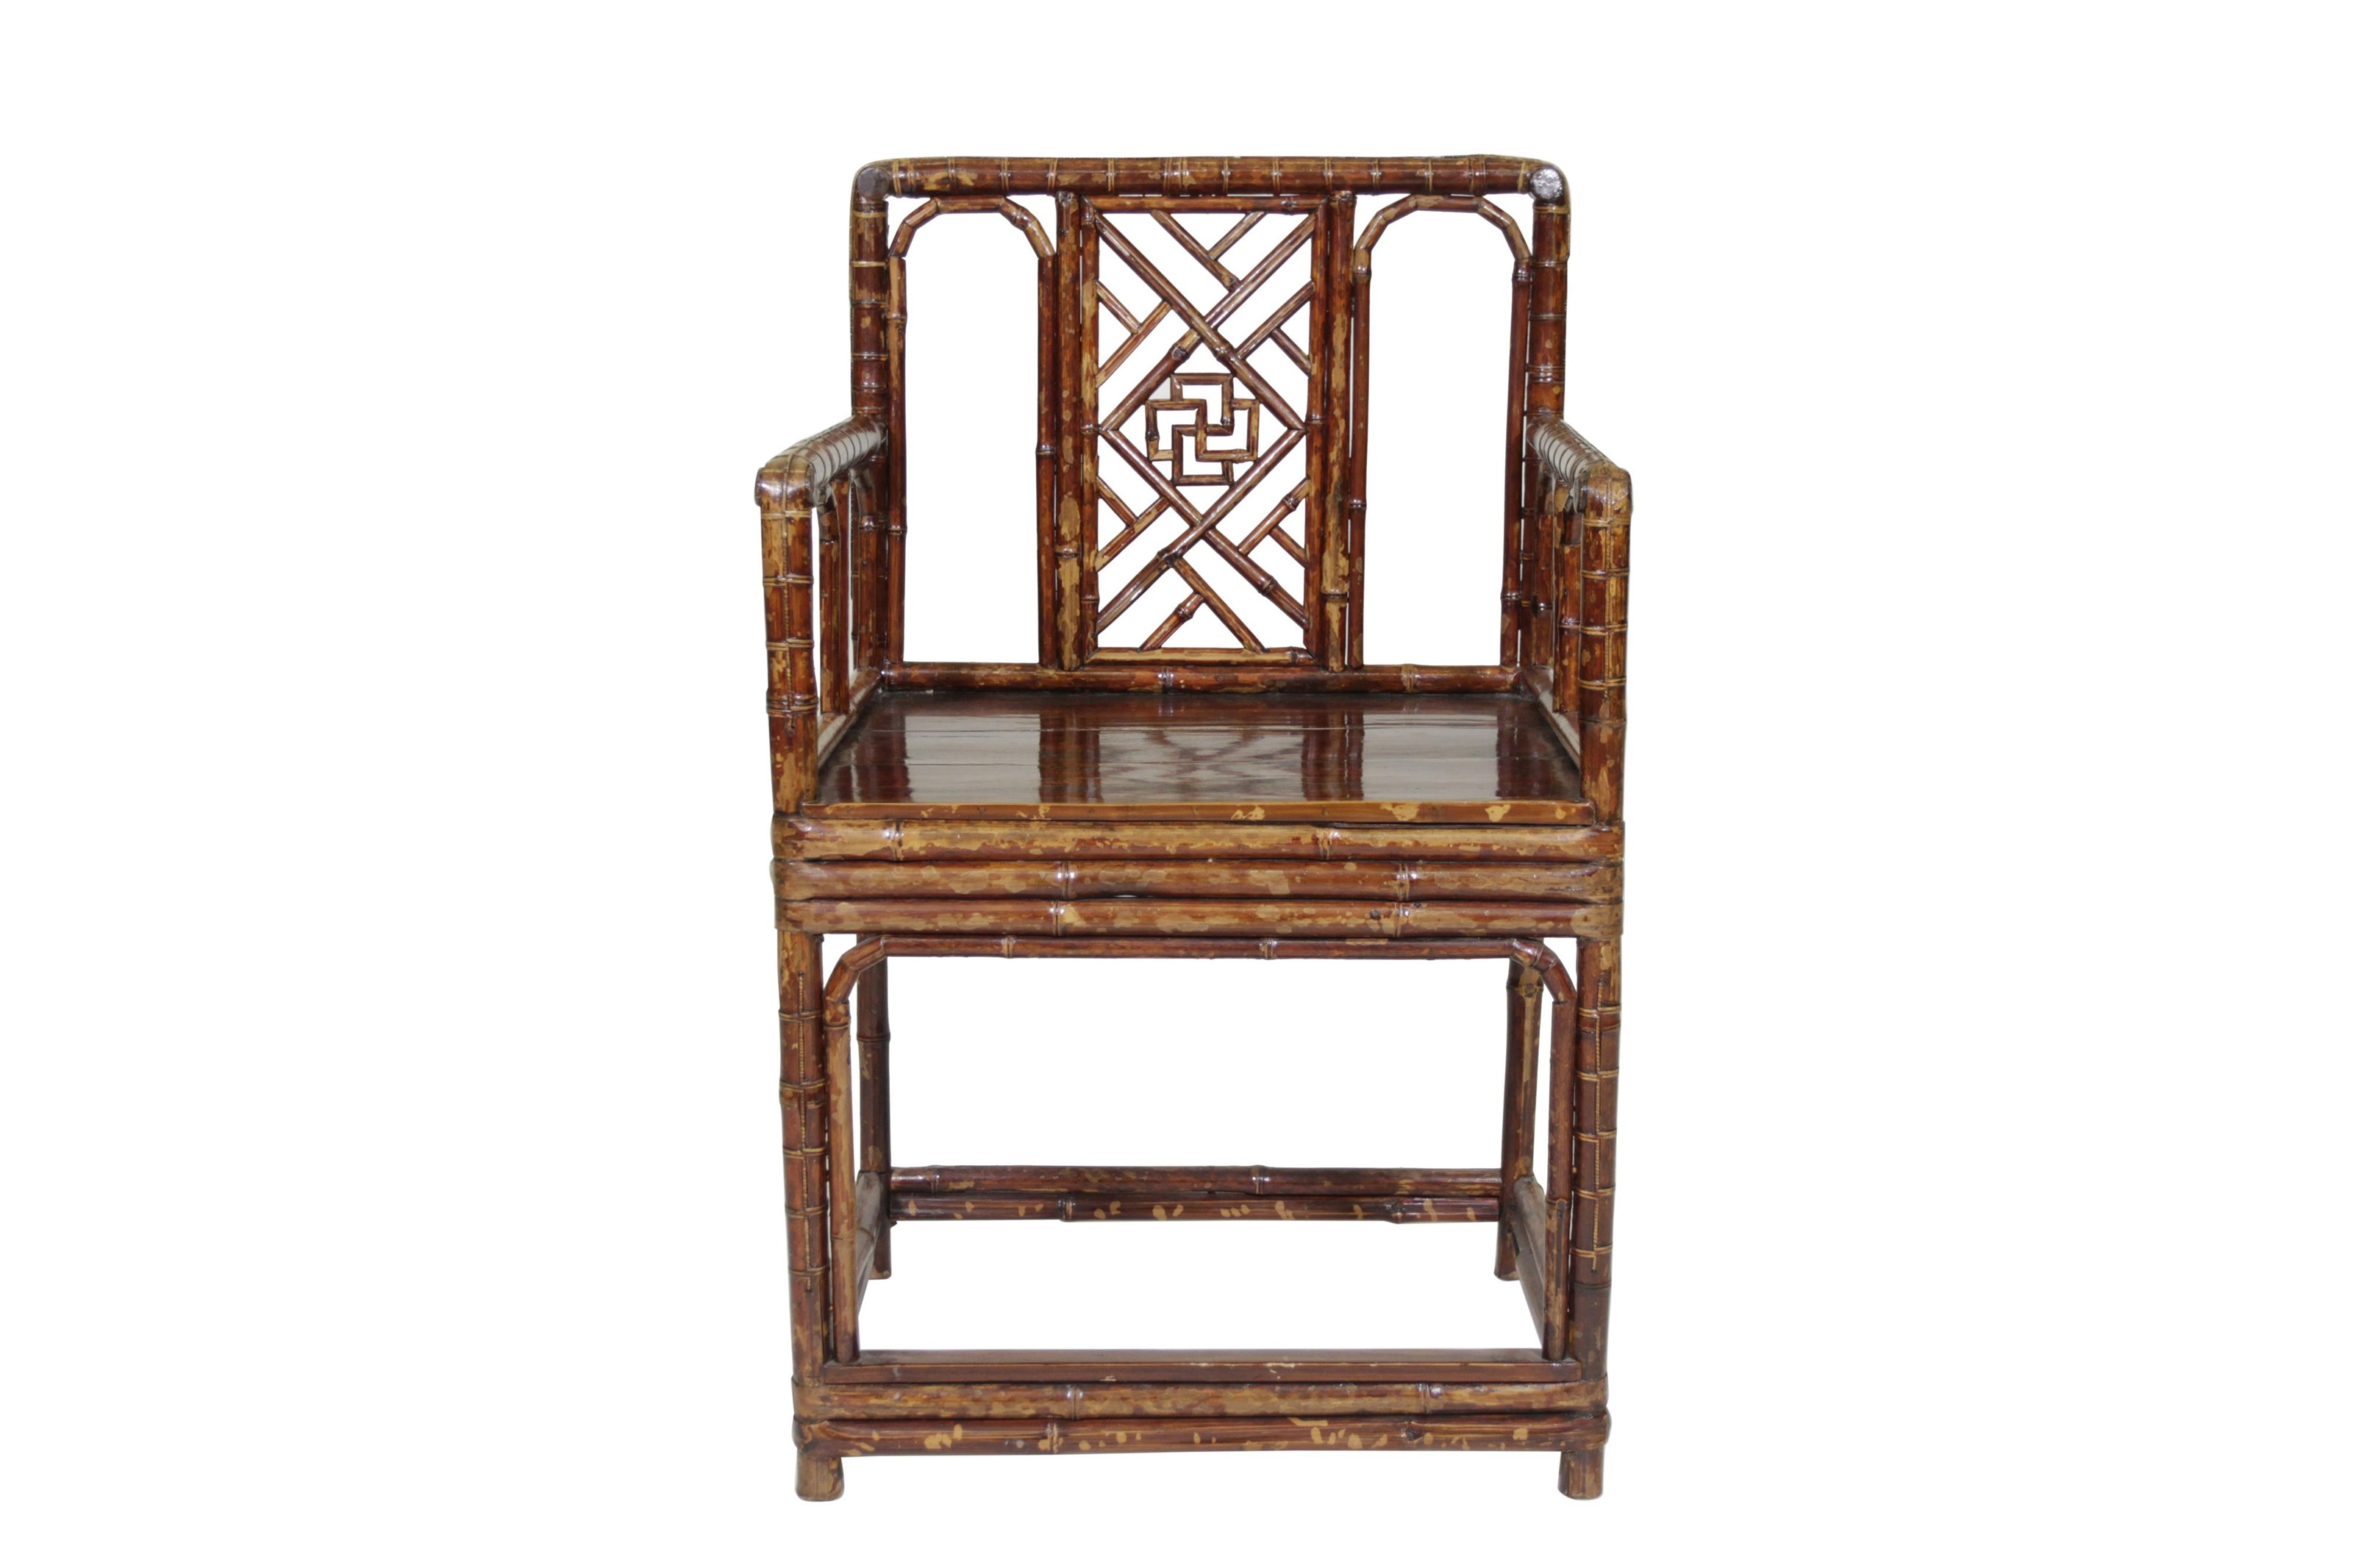 Arm Chair by C.S. Wo & Sons Antiques at C. S. Wo & Sons Hawaii